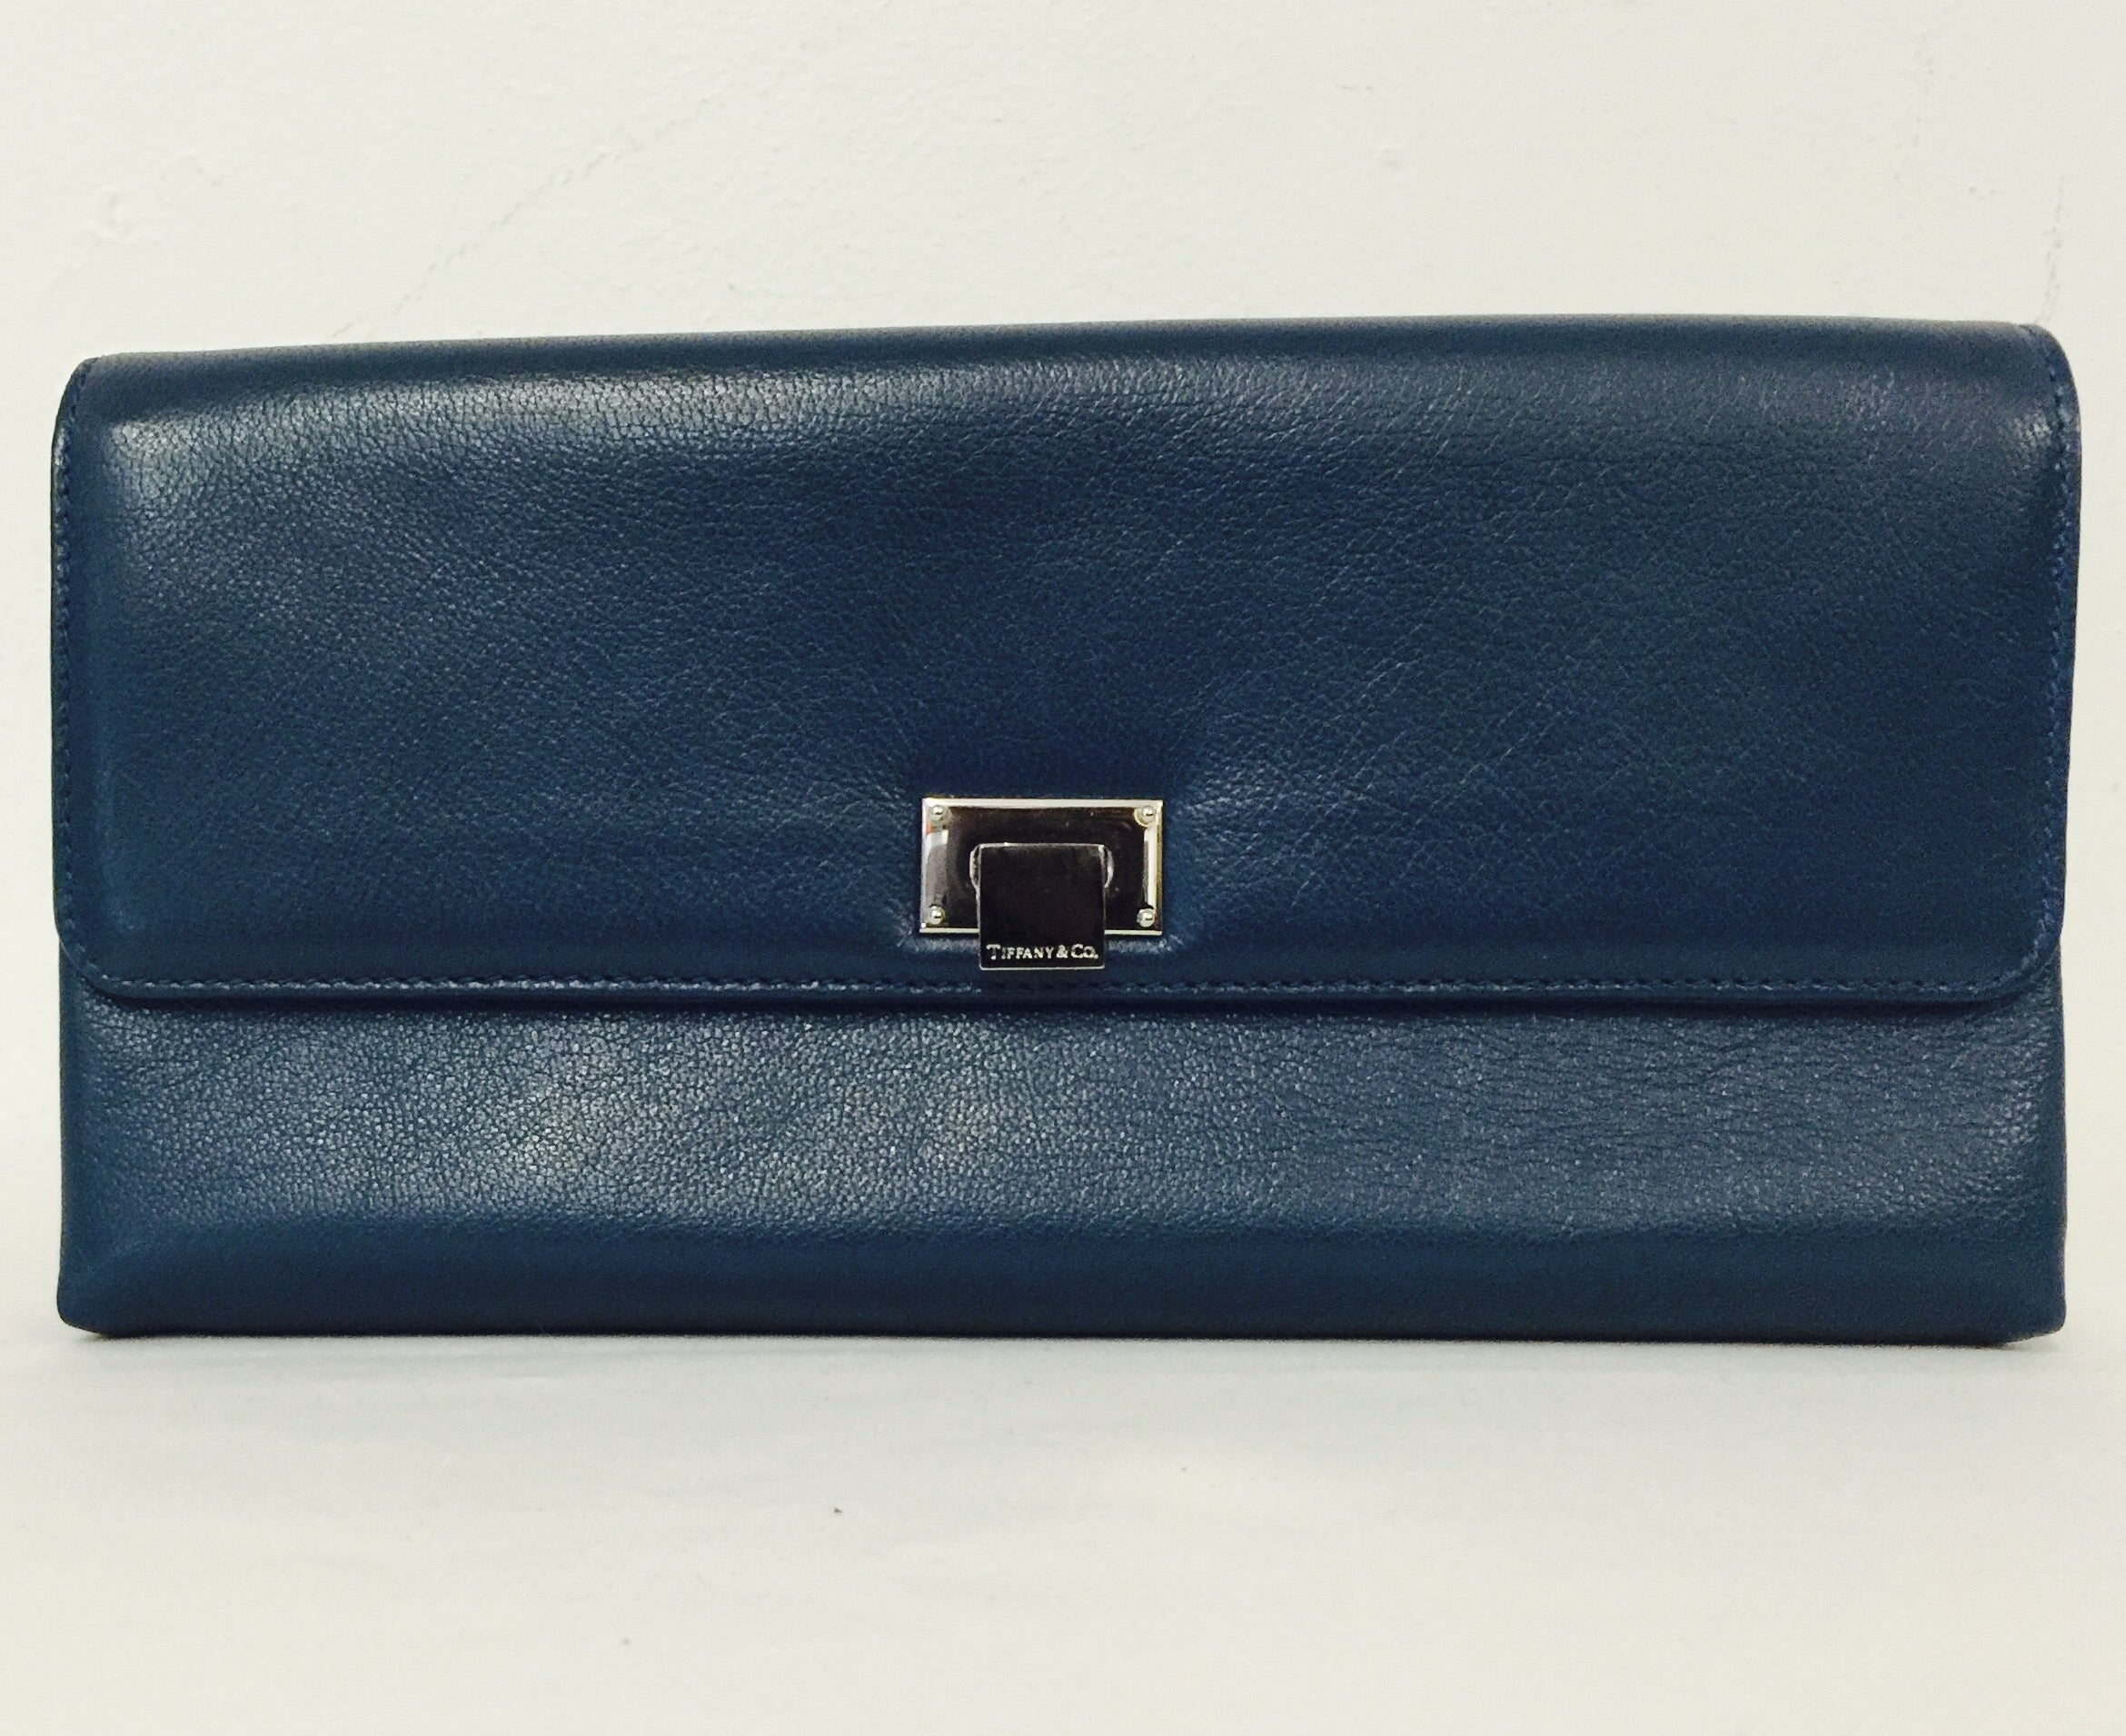 Teal Leather Piper Convertible Clutch Excellent Condition For Sale at  1stdibs a2a5d10fab807